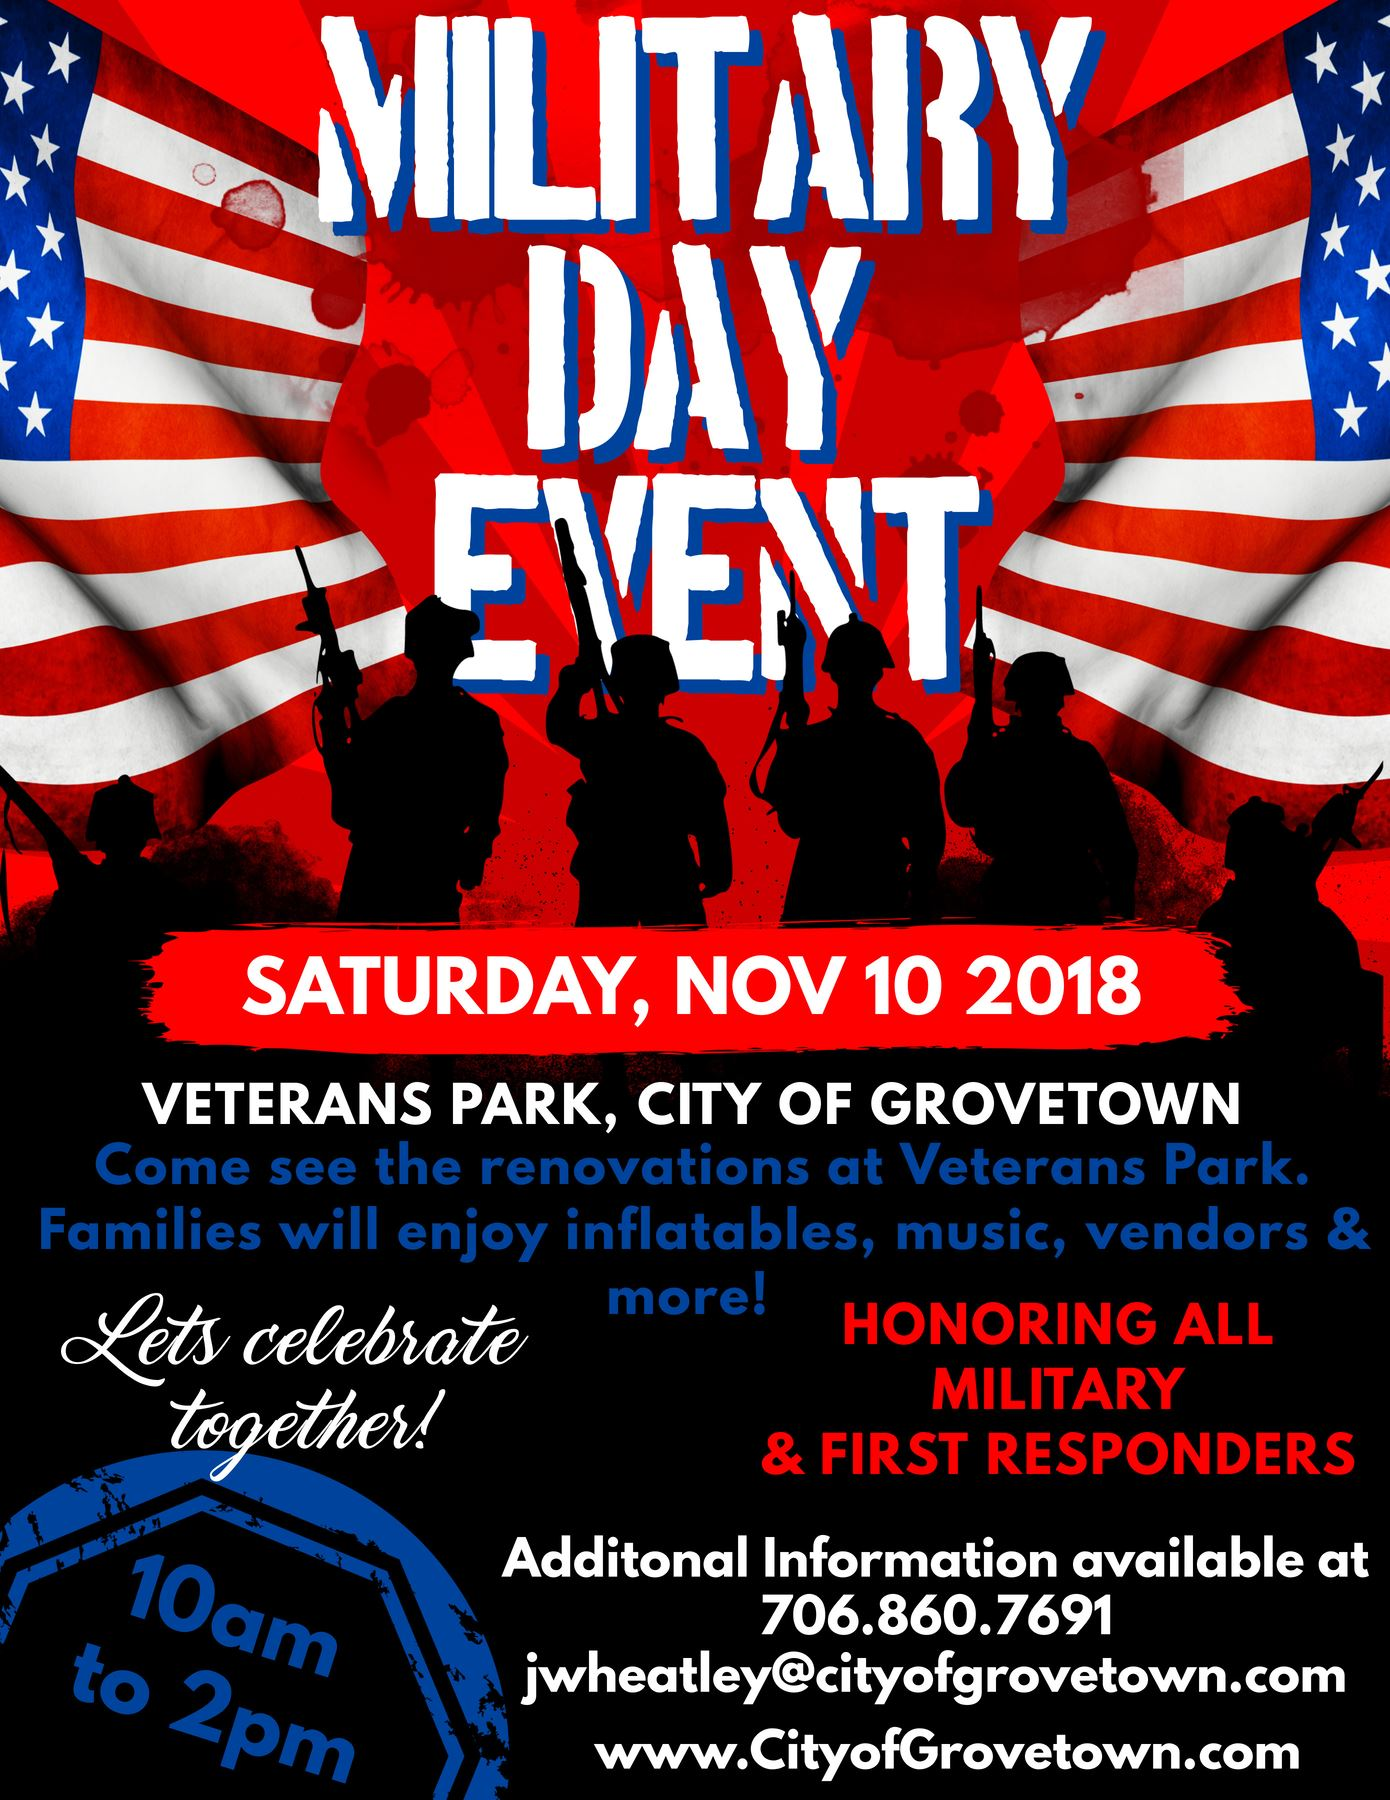 Military Day Event Flyer